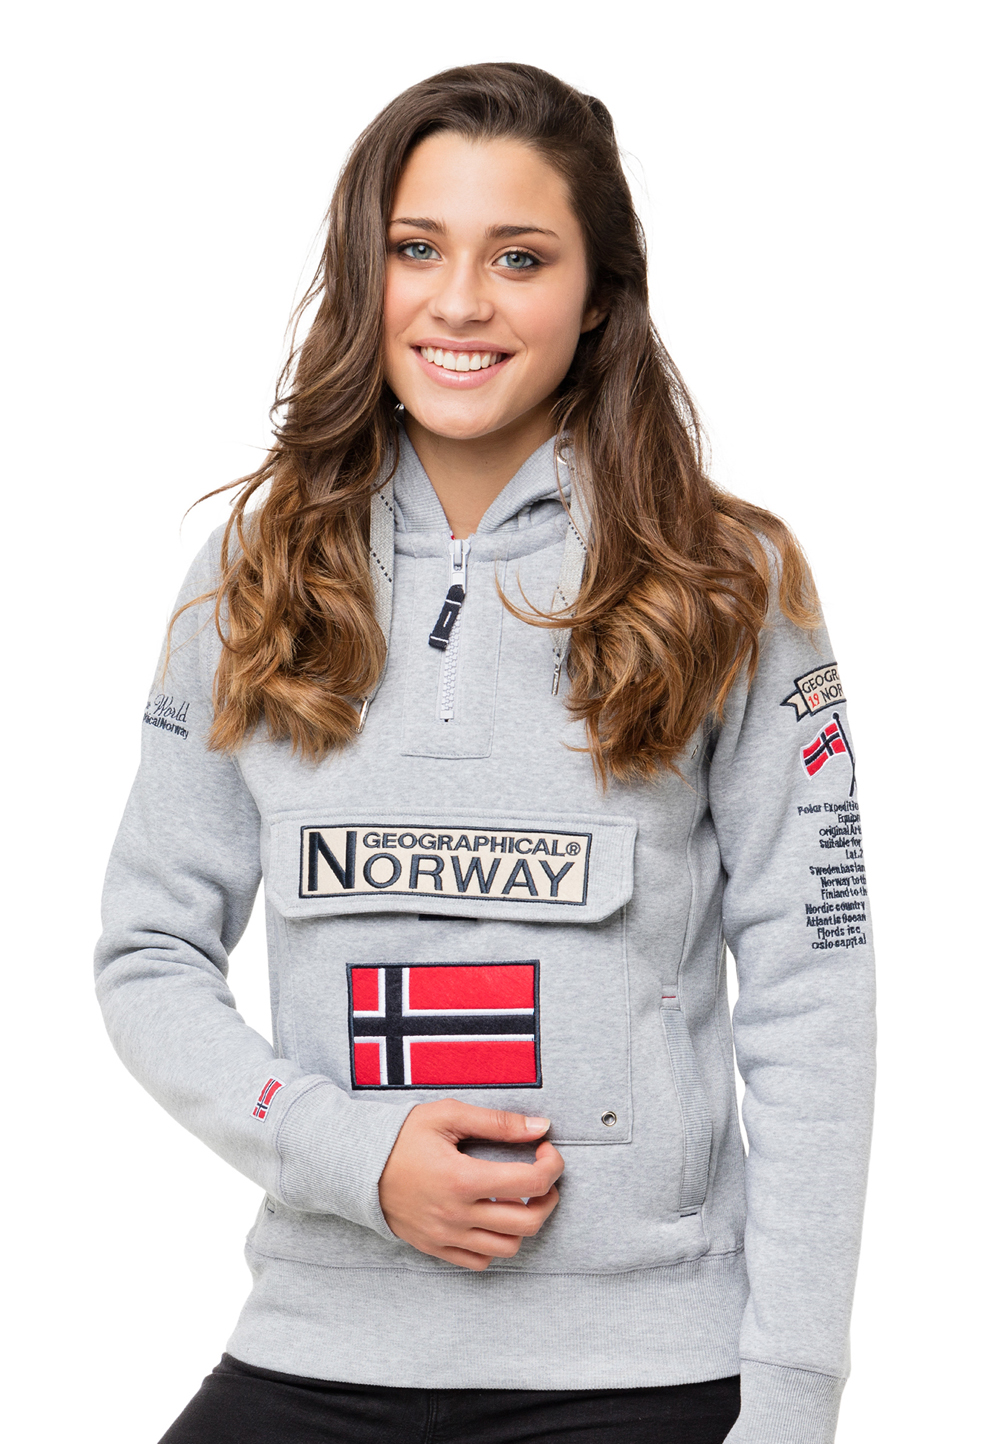 Geographical Norway Hoodie, Langarm, Kapuze grau | Bekleidung > Sweatshirts & -jacken > Hoodies | Grau | Geographical Norway